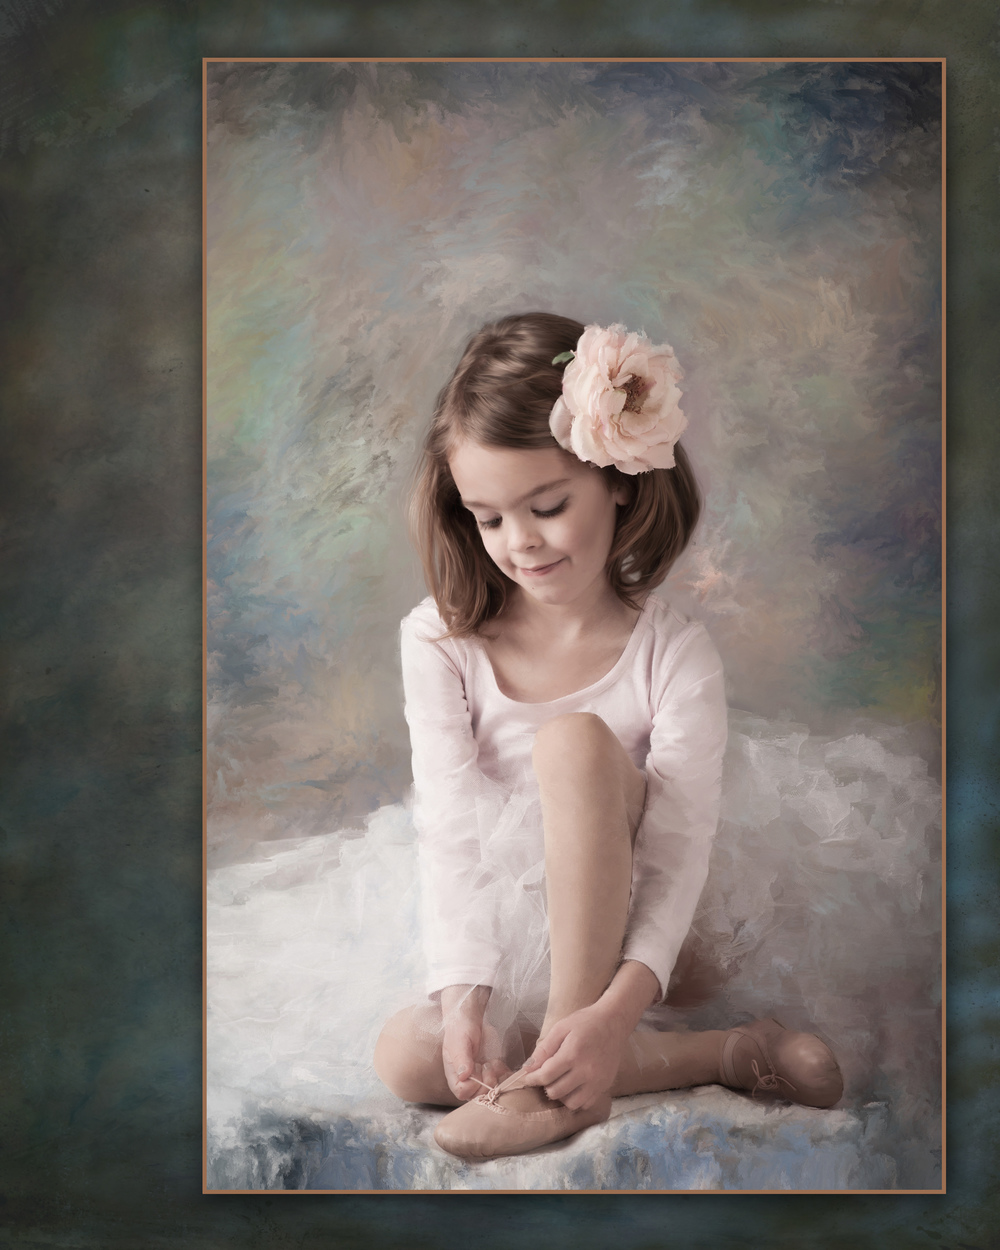 Tiny Dancer by Kathy Norwood